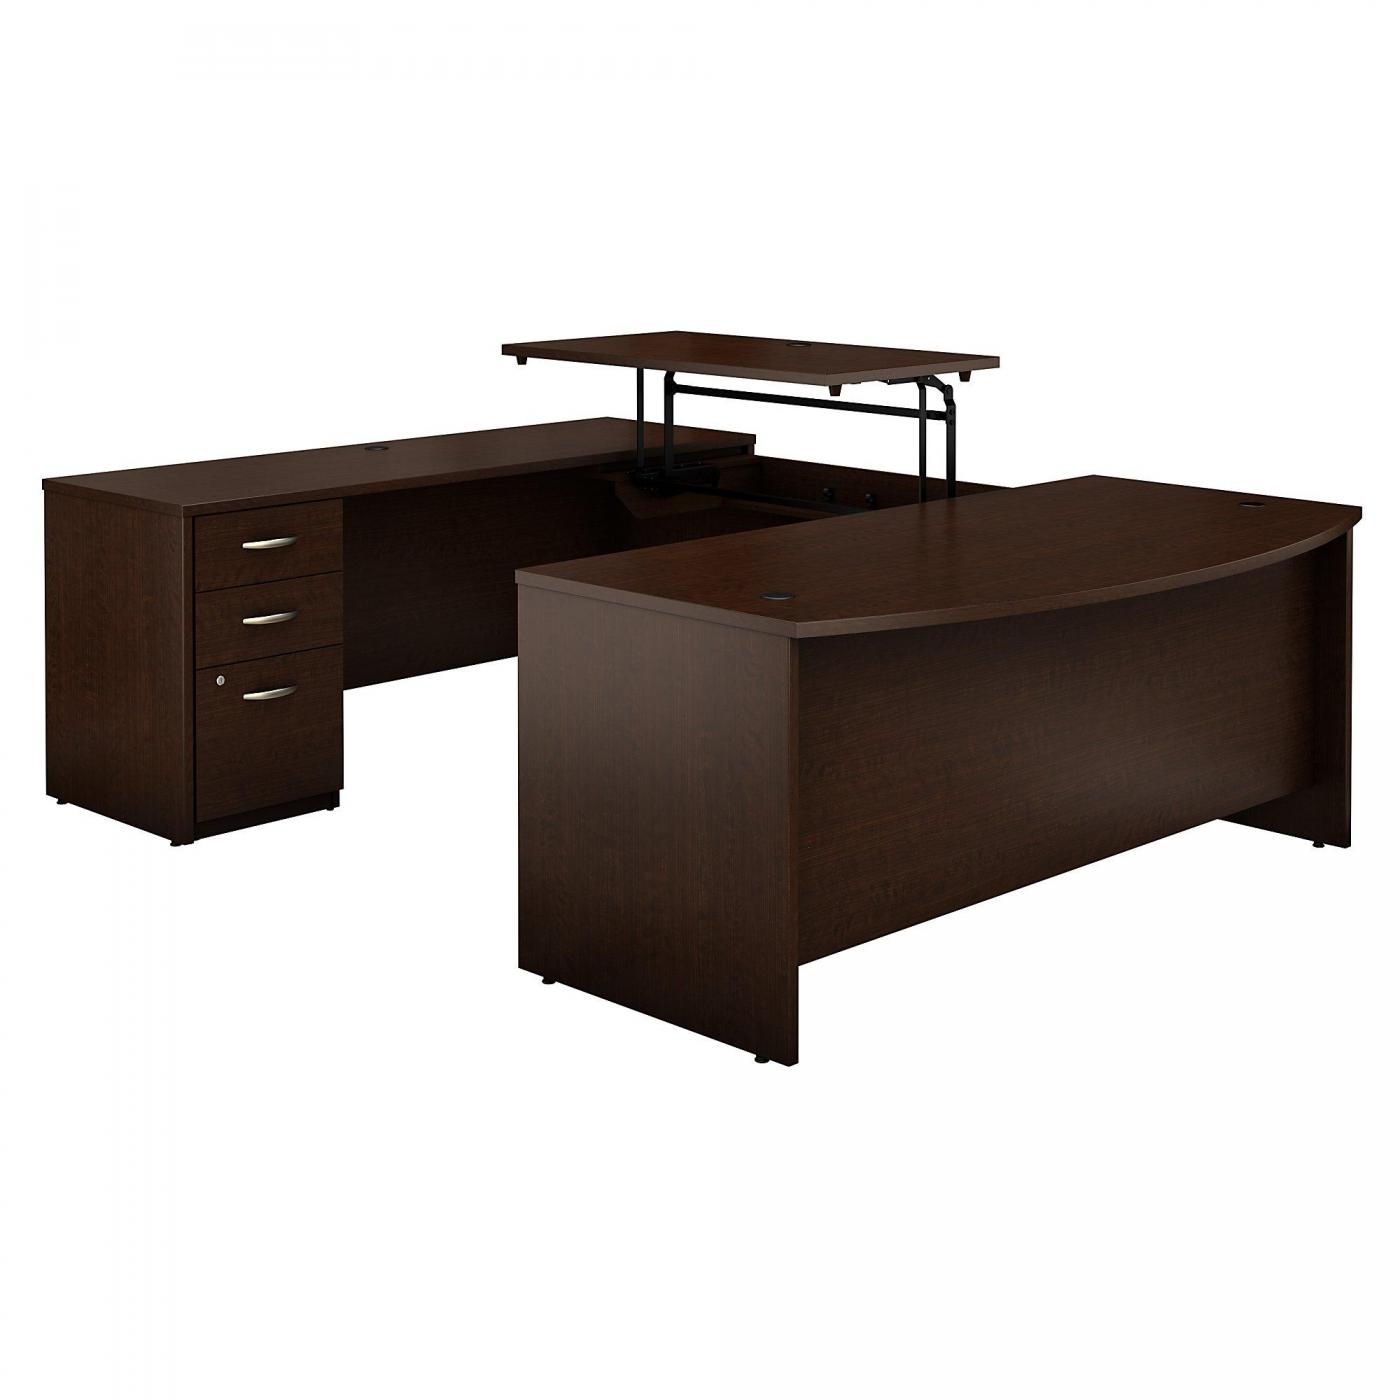 <font color=#c60><b>BUSH BUSINESS FURNITURE SERIES C ELITE 72W X 36D 3 POSITION SIT TO STAND BOW FRONT U SHAPED DESK WITH 3 DRAWER FILE CABINET. FREE SHIPPING. VIDEO:</font></b></font></b>